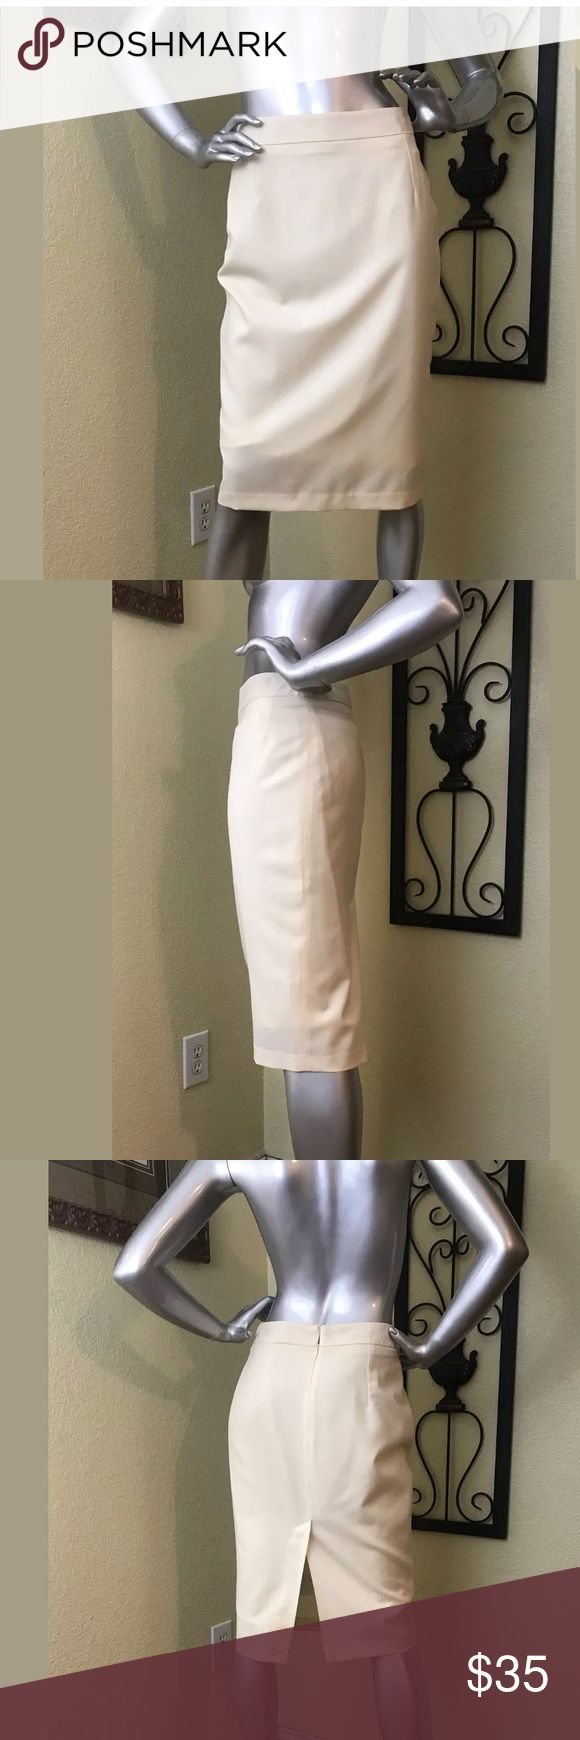 """H&M M BY MADONNA Cream Pencil Skirt Women's M BY MADONNA Cream Pencil Skirt. Back Slit. Back Zip Closure. Lined. Size 8 100% Wool. Machine Washable/Dry Clean. Made in Romania.  This skirt is excellent preowned condition, however there are two tiny holes at waist where sensors were removed.   Approximated  Measurements (All measurements are taken with garment unstretched, lying flat, from side to side, one side only, double for circumference): 13.5"""" Waist 25"""" Length 10.5"""" Back Slit H&M Skirts…"""